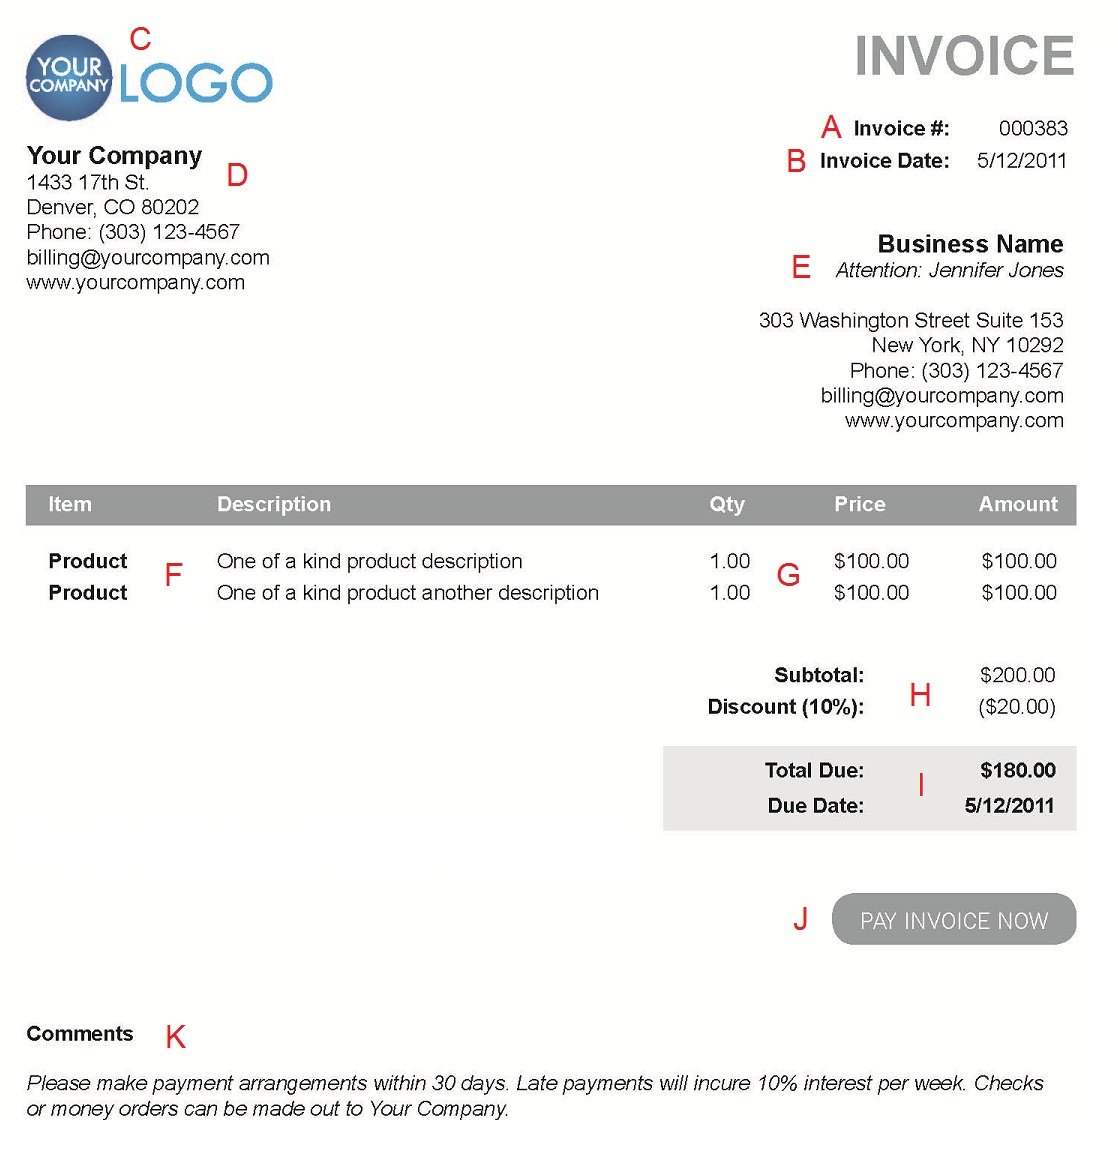 Pigbrotherus  Unique The  Different Sections Of An Electronic Payment Invoice With Remarkable A  With Adorable Microsoft Invoice Software Also Nissan Altima Invoice Price In Addition Crv Invoice And Off Invoice Discount As Well As Painting Invoice Sample Additionally Invoice Example Template From Paysimplecom With Pigbrotherus  Remarkable The  Different Sections Of An Electronic Payment Invoice With Adorable A  And Unique Microsoft Invoice Software Also Nissan Altima Invoice Price In Addition Crv Invoice From Paysimplecom